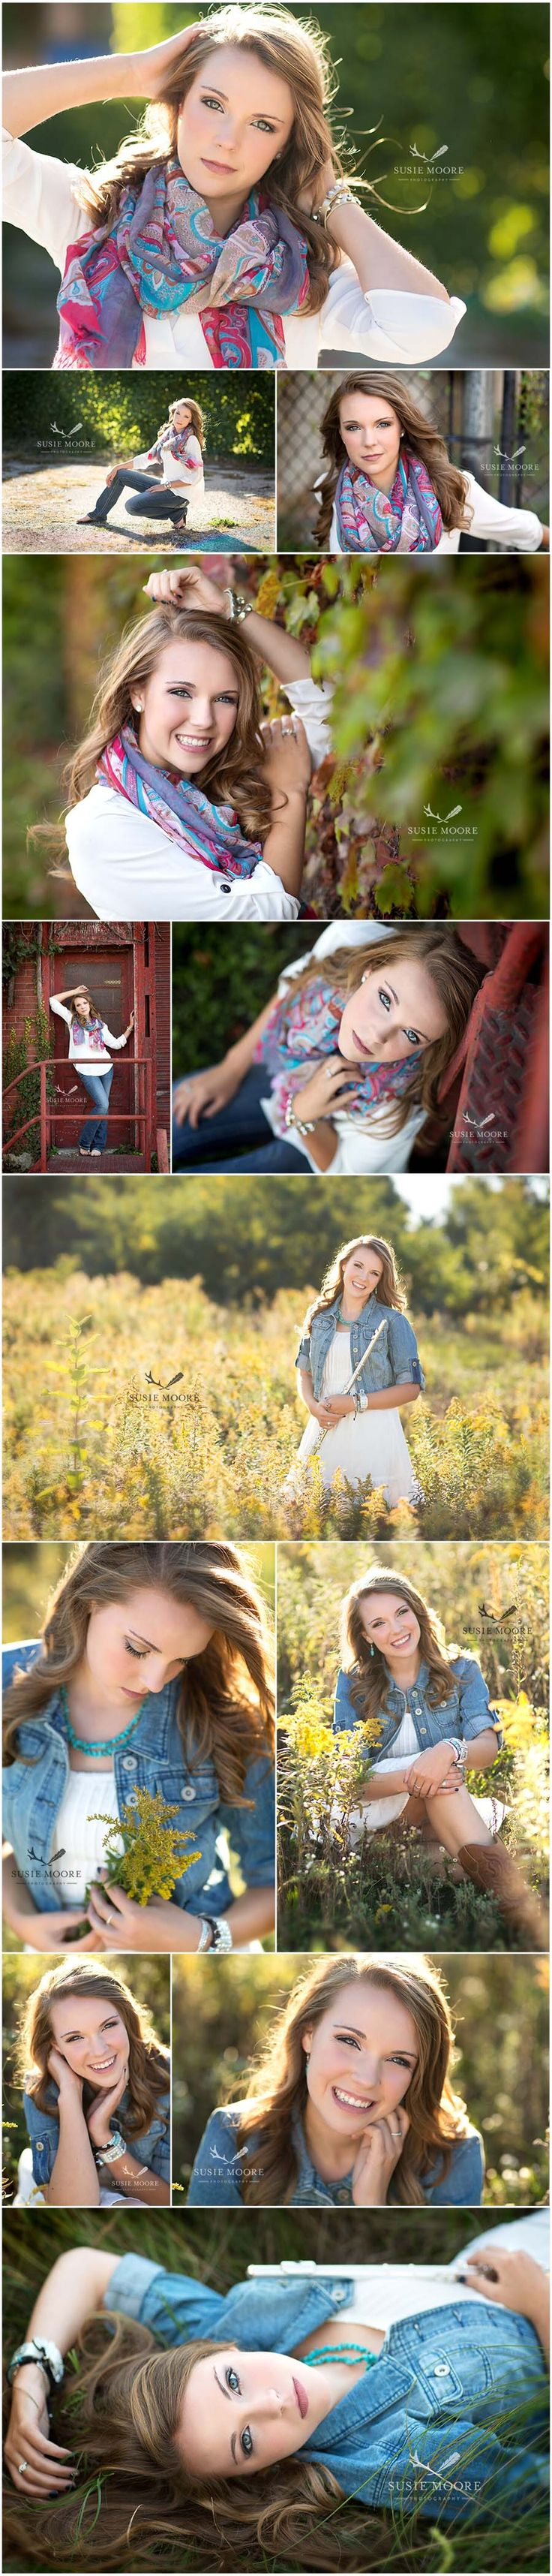 Frankie| Senior Girl | Indianapolis Senior Photography